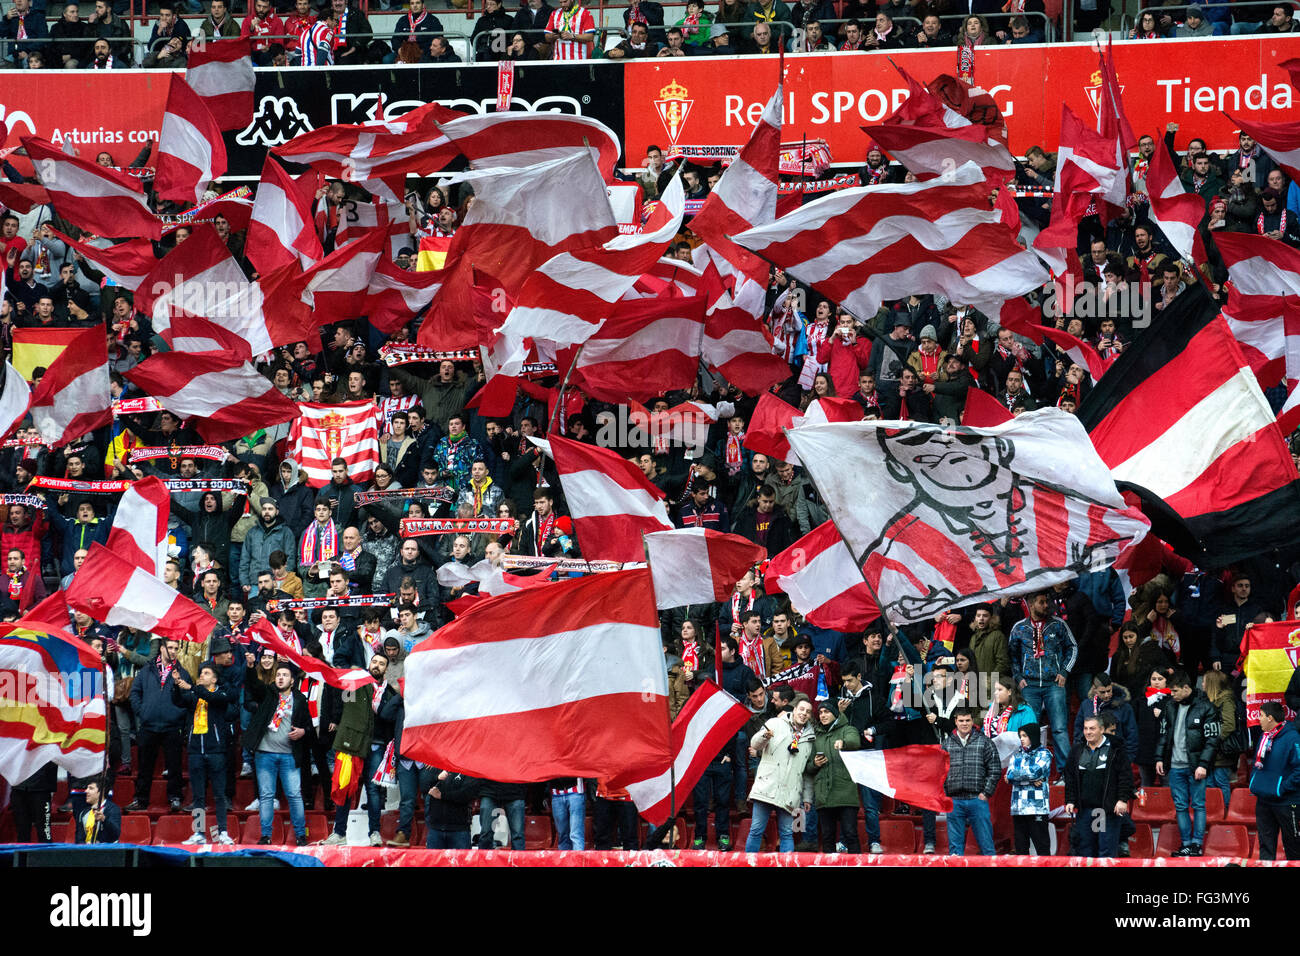 Gijon, Spain. 17th February, 2016. Real Sporting de Gijon's supporters with flags during football match of Spanish - Stock Image